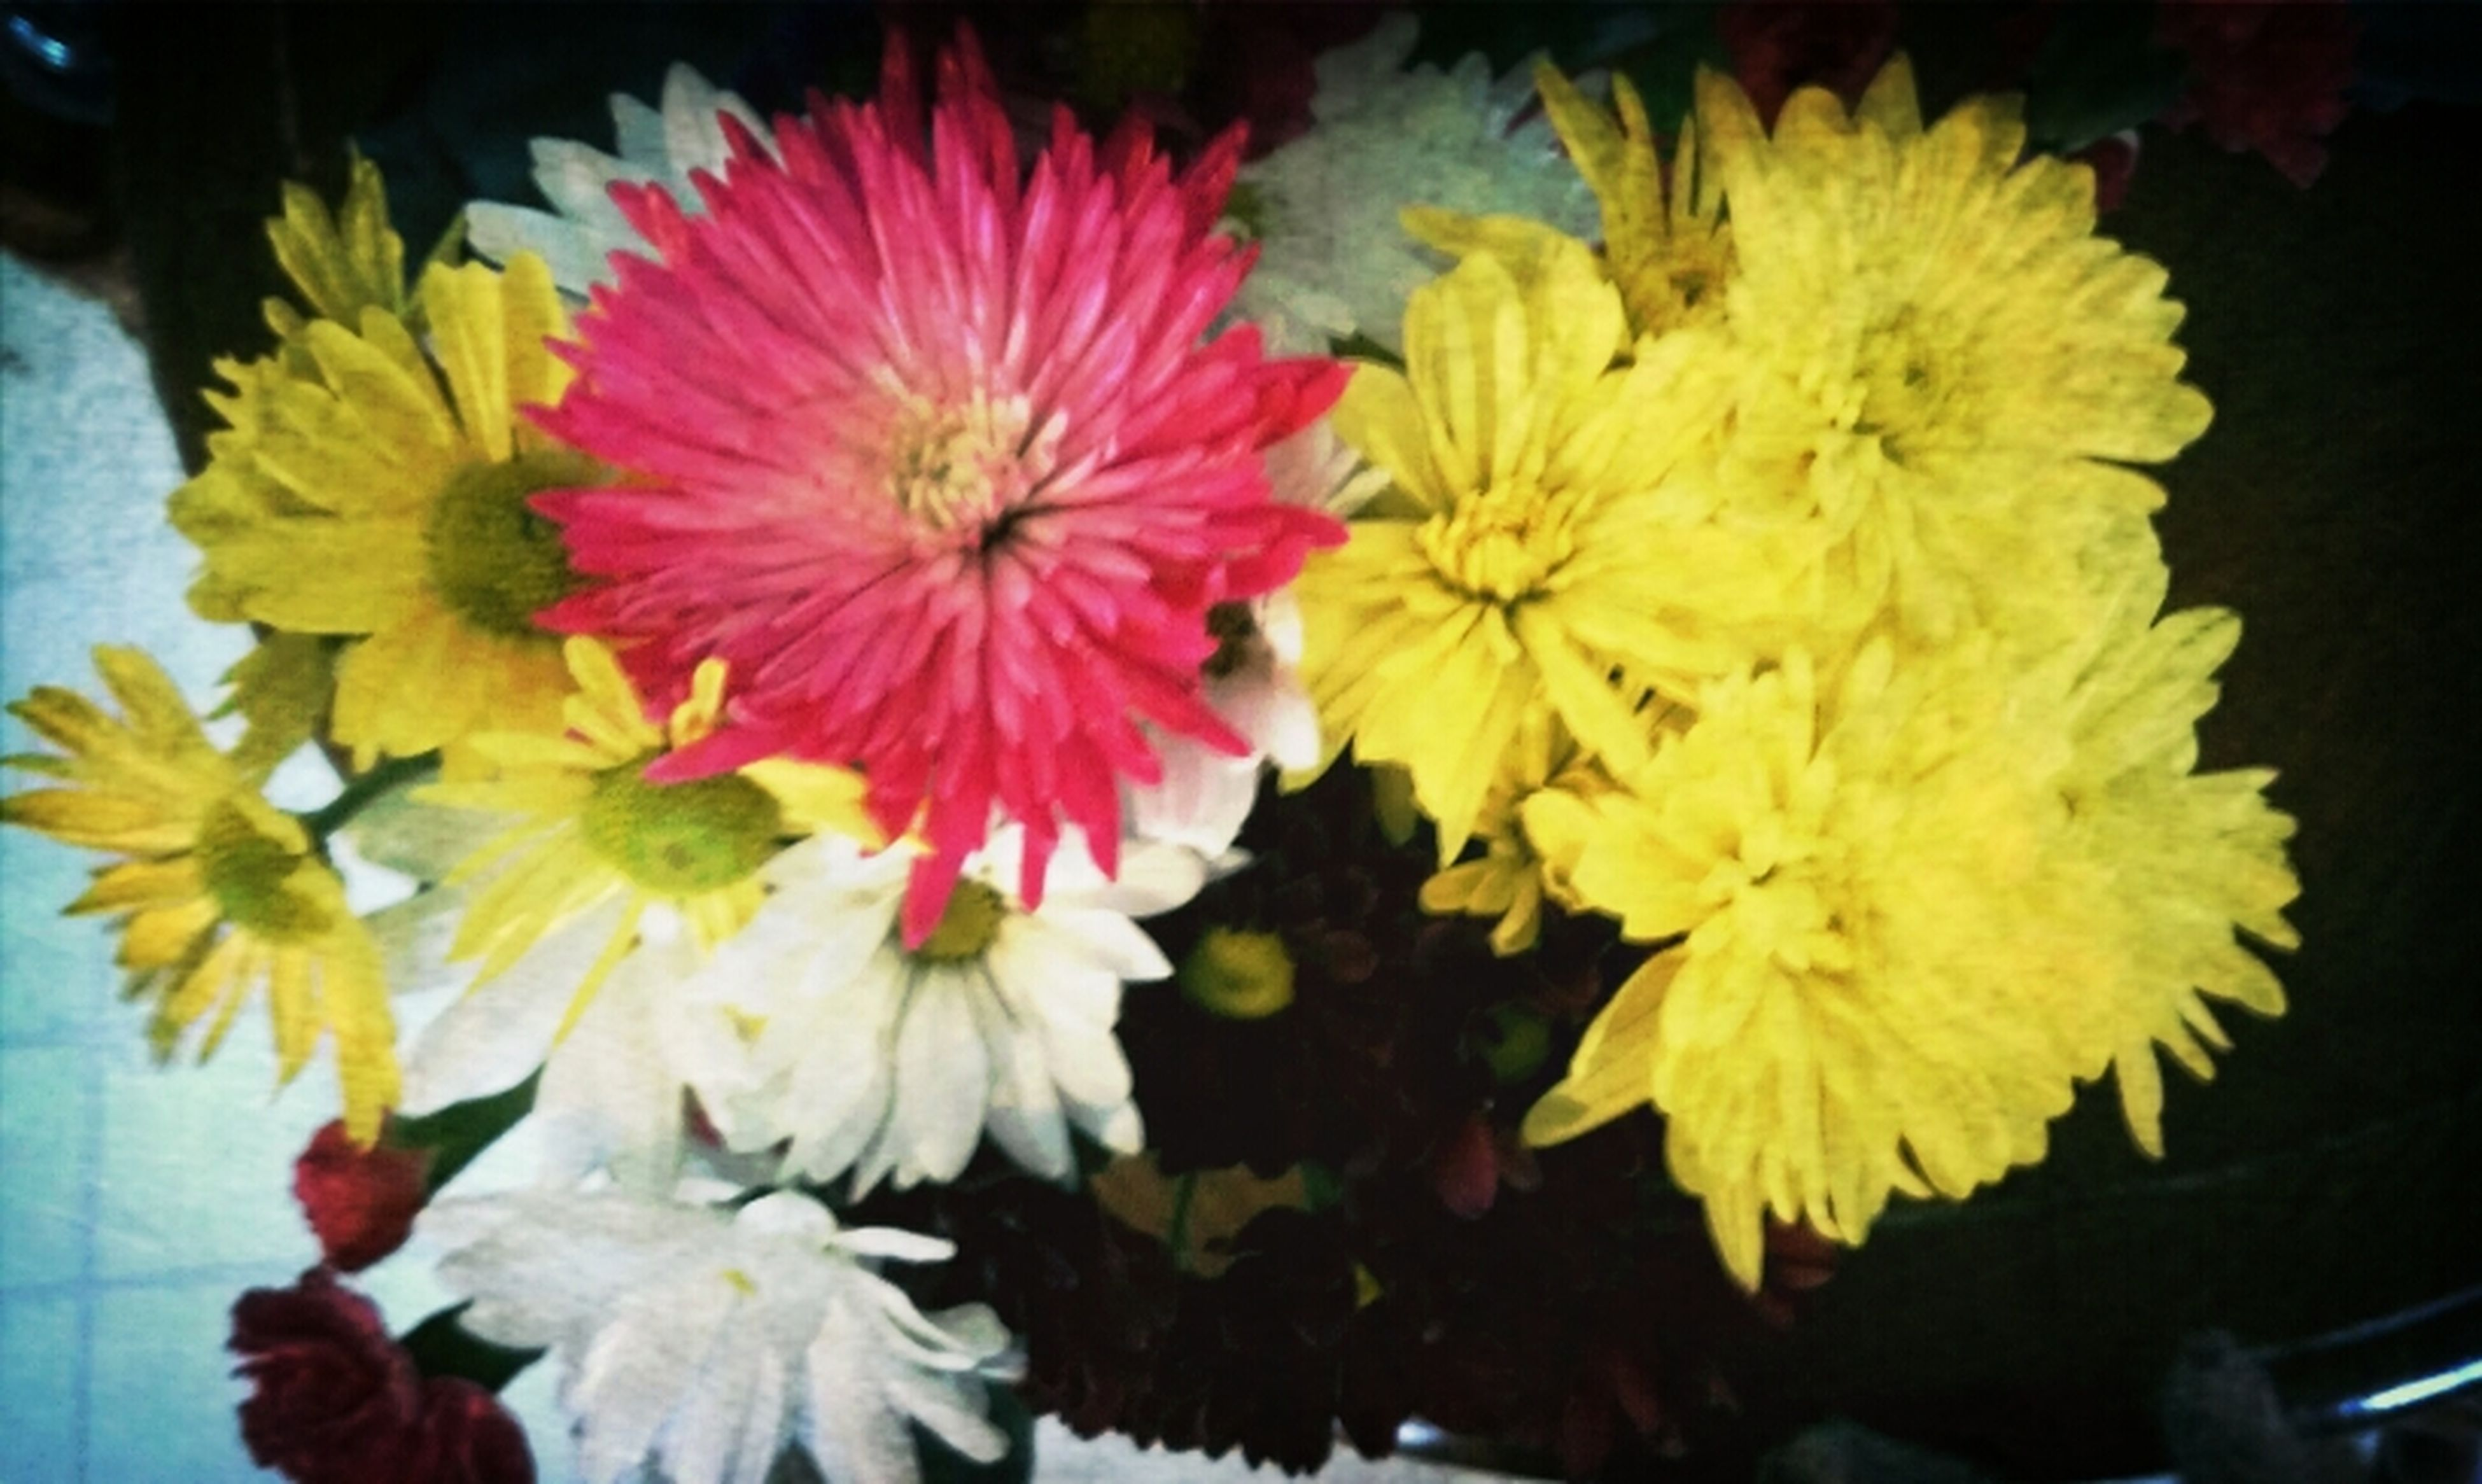 flower, petal, freshness, flower head, yellow, fragility, beauty in nature, close-up, indoors, high angle view, blooming, nature, growth, plant, in bloom, pollen, no people, bunch of flowers, pink color, blossom